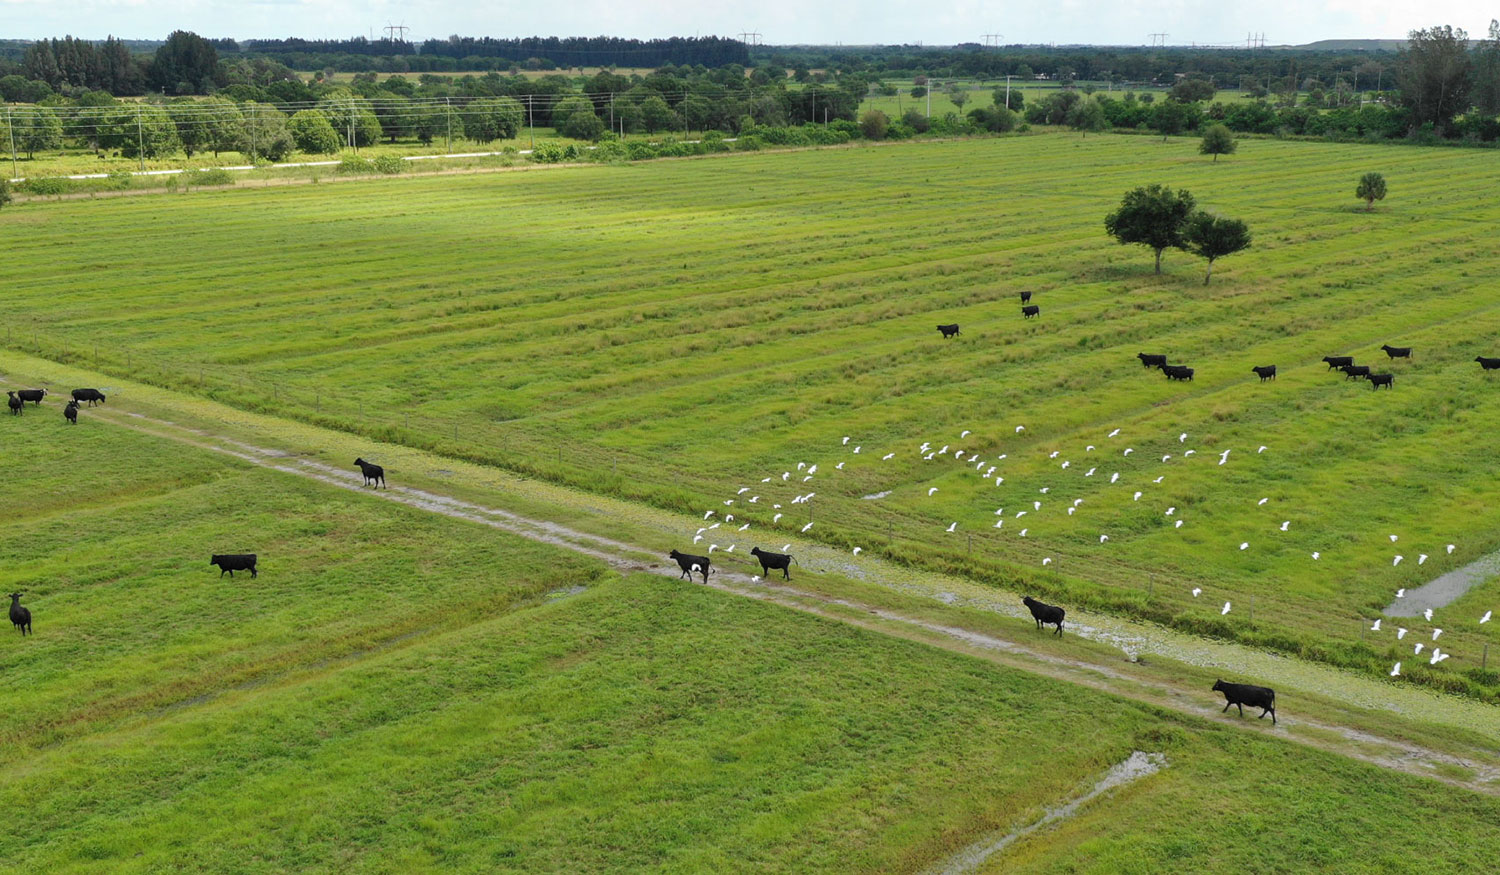 Photo of cows on opportunizy zone land in Florida